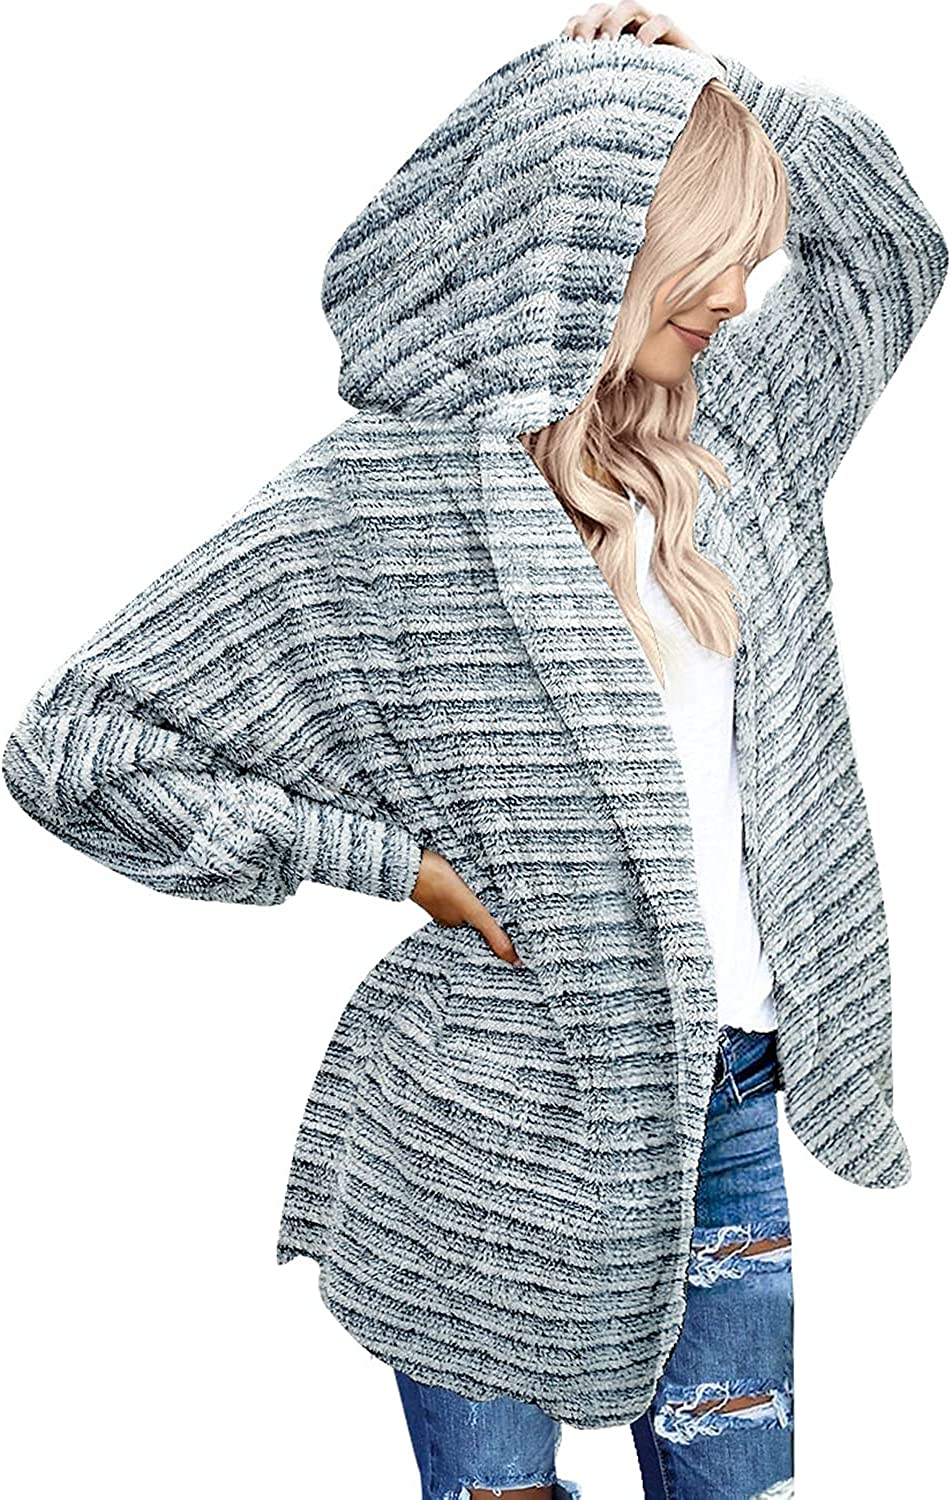 LookbookStore Women's Oversized Open Draped Hooded Front Pockets Branded goods Max 73% OFF